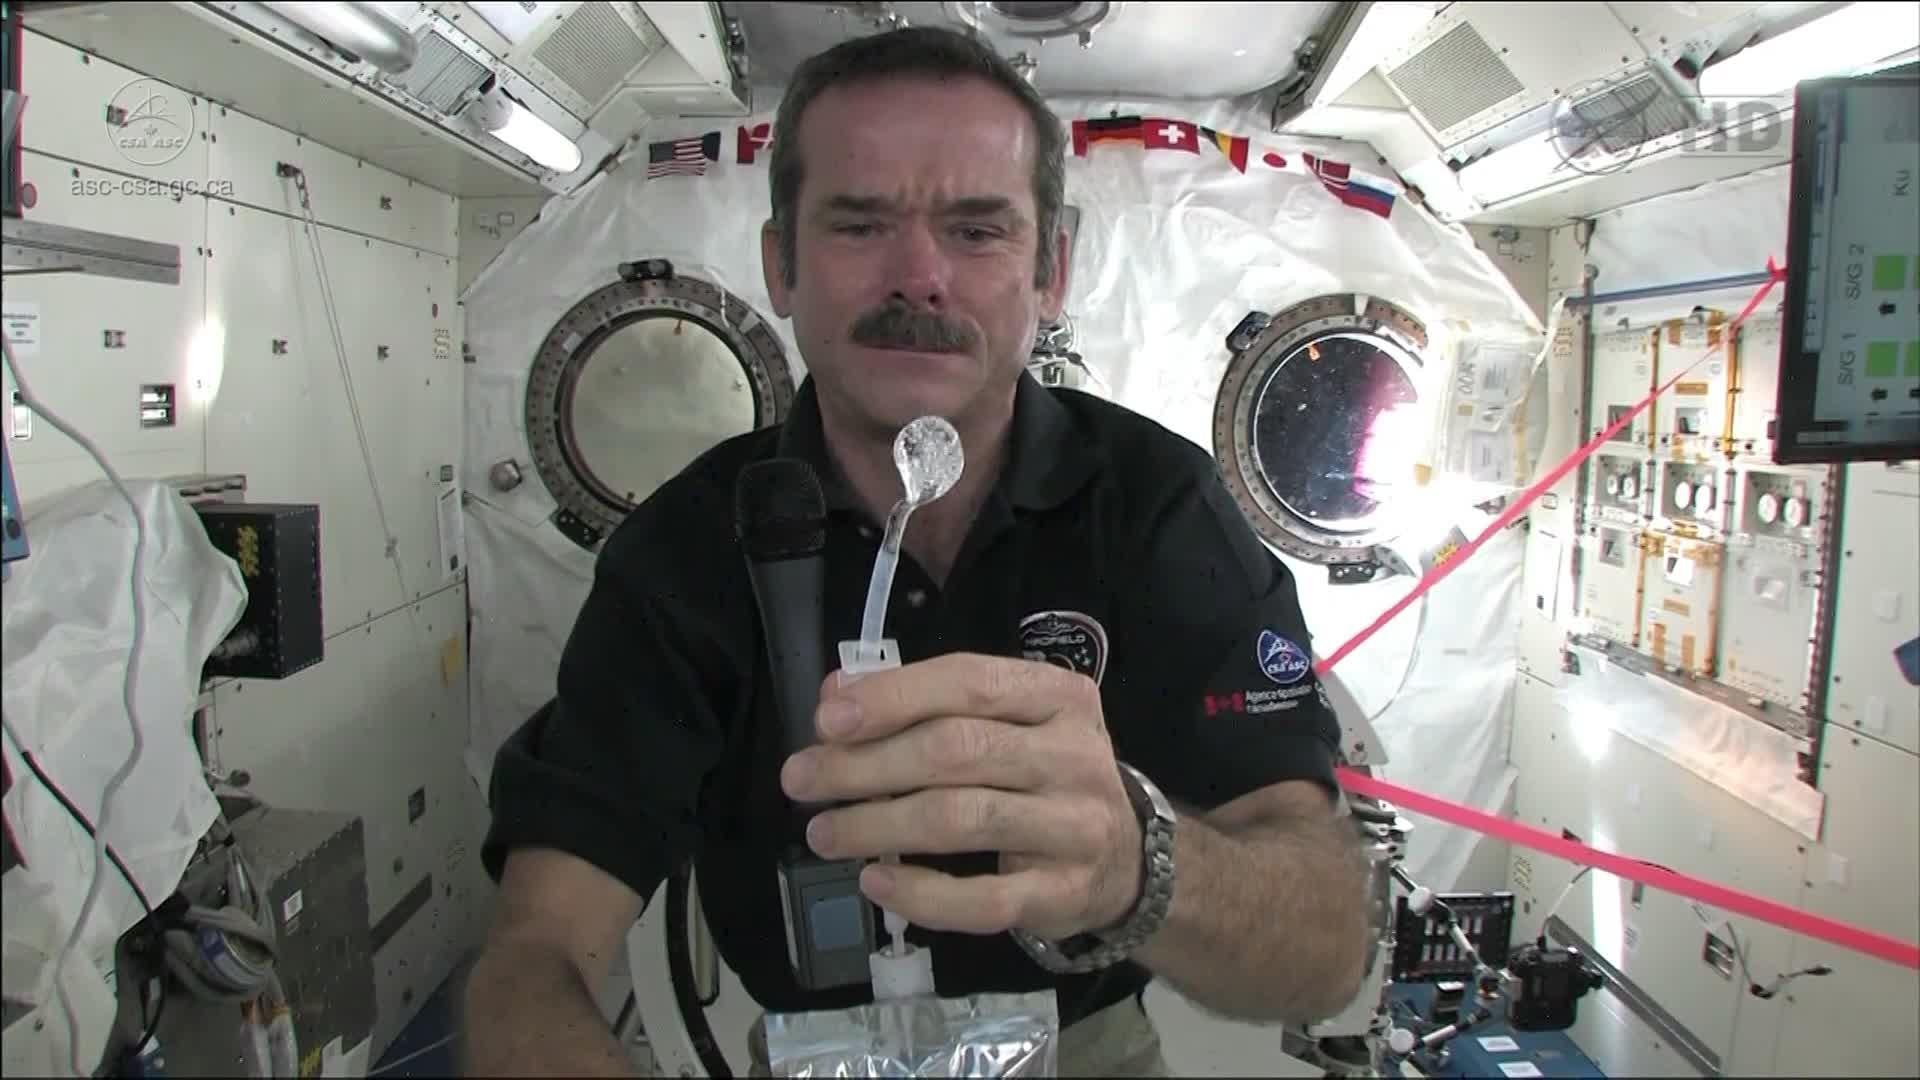 How astronauts use the bathroom - How Astronauts Use The Bathroom 40